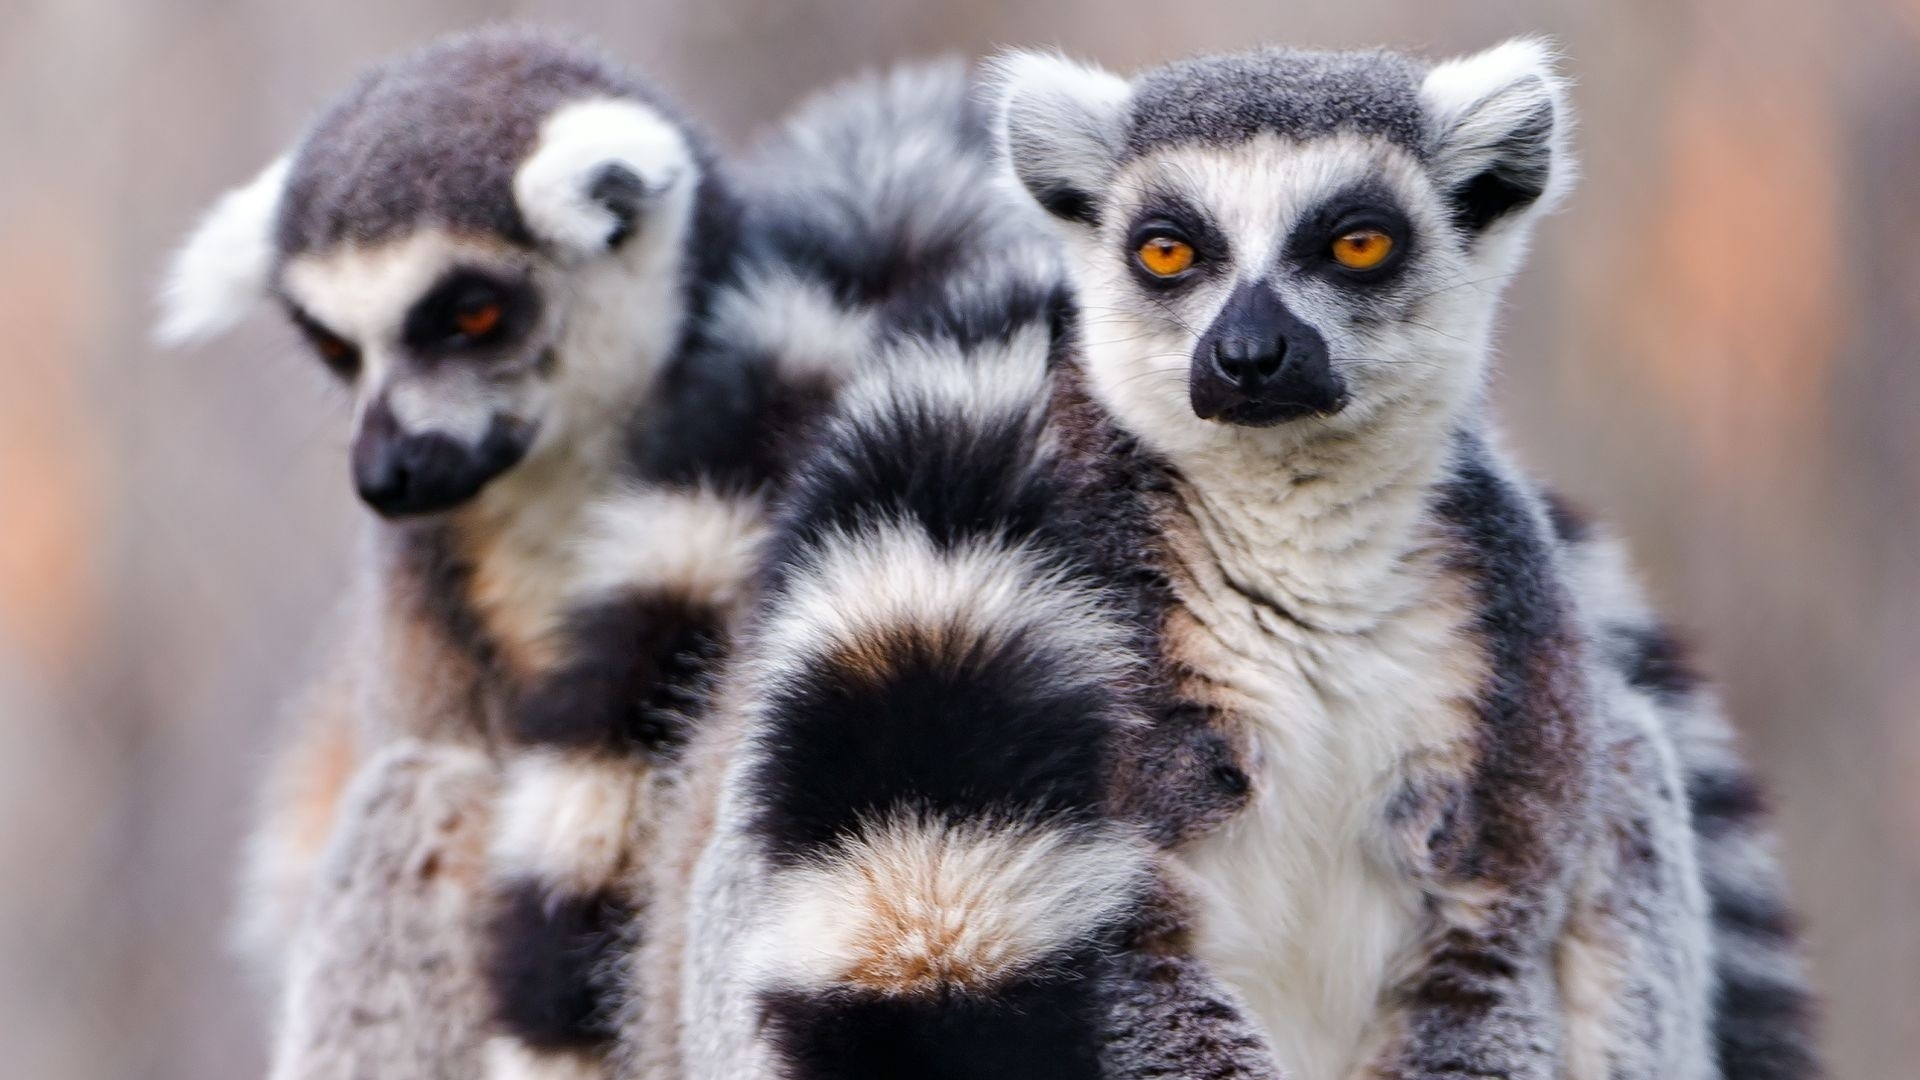 Animals-lemur-nature-1920x1080-lemur-nature-via-www-all-in-wallpaper-wp3402425